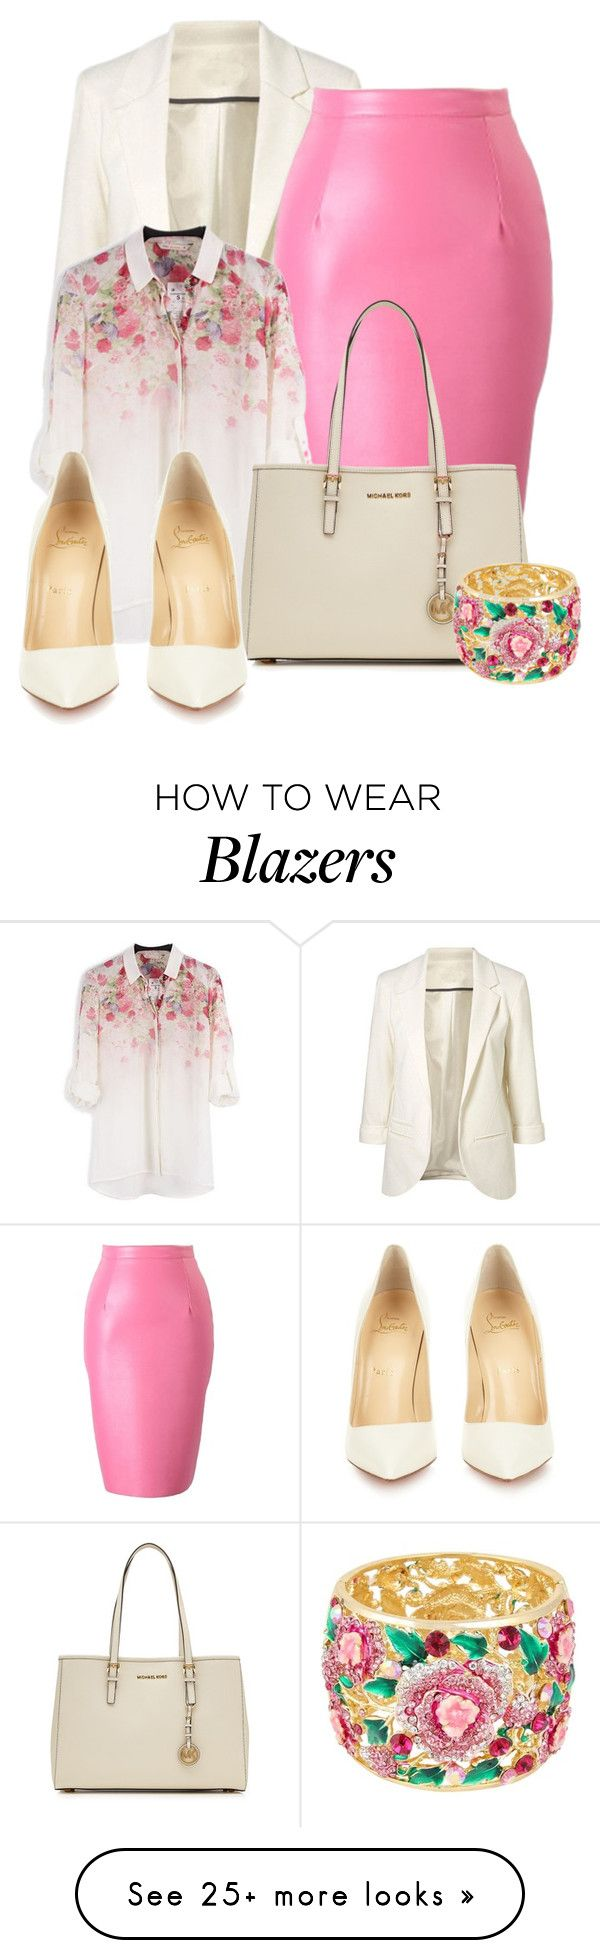 """""""A Happy Mix"""" by ljbminime on Polyvore featuring Mode, MICHAEL Michael Kors, Christian Louboutin, women's clothing, women's fashion, women, female, woman, misses und juniors"""